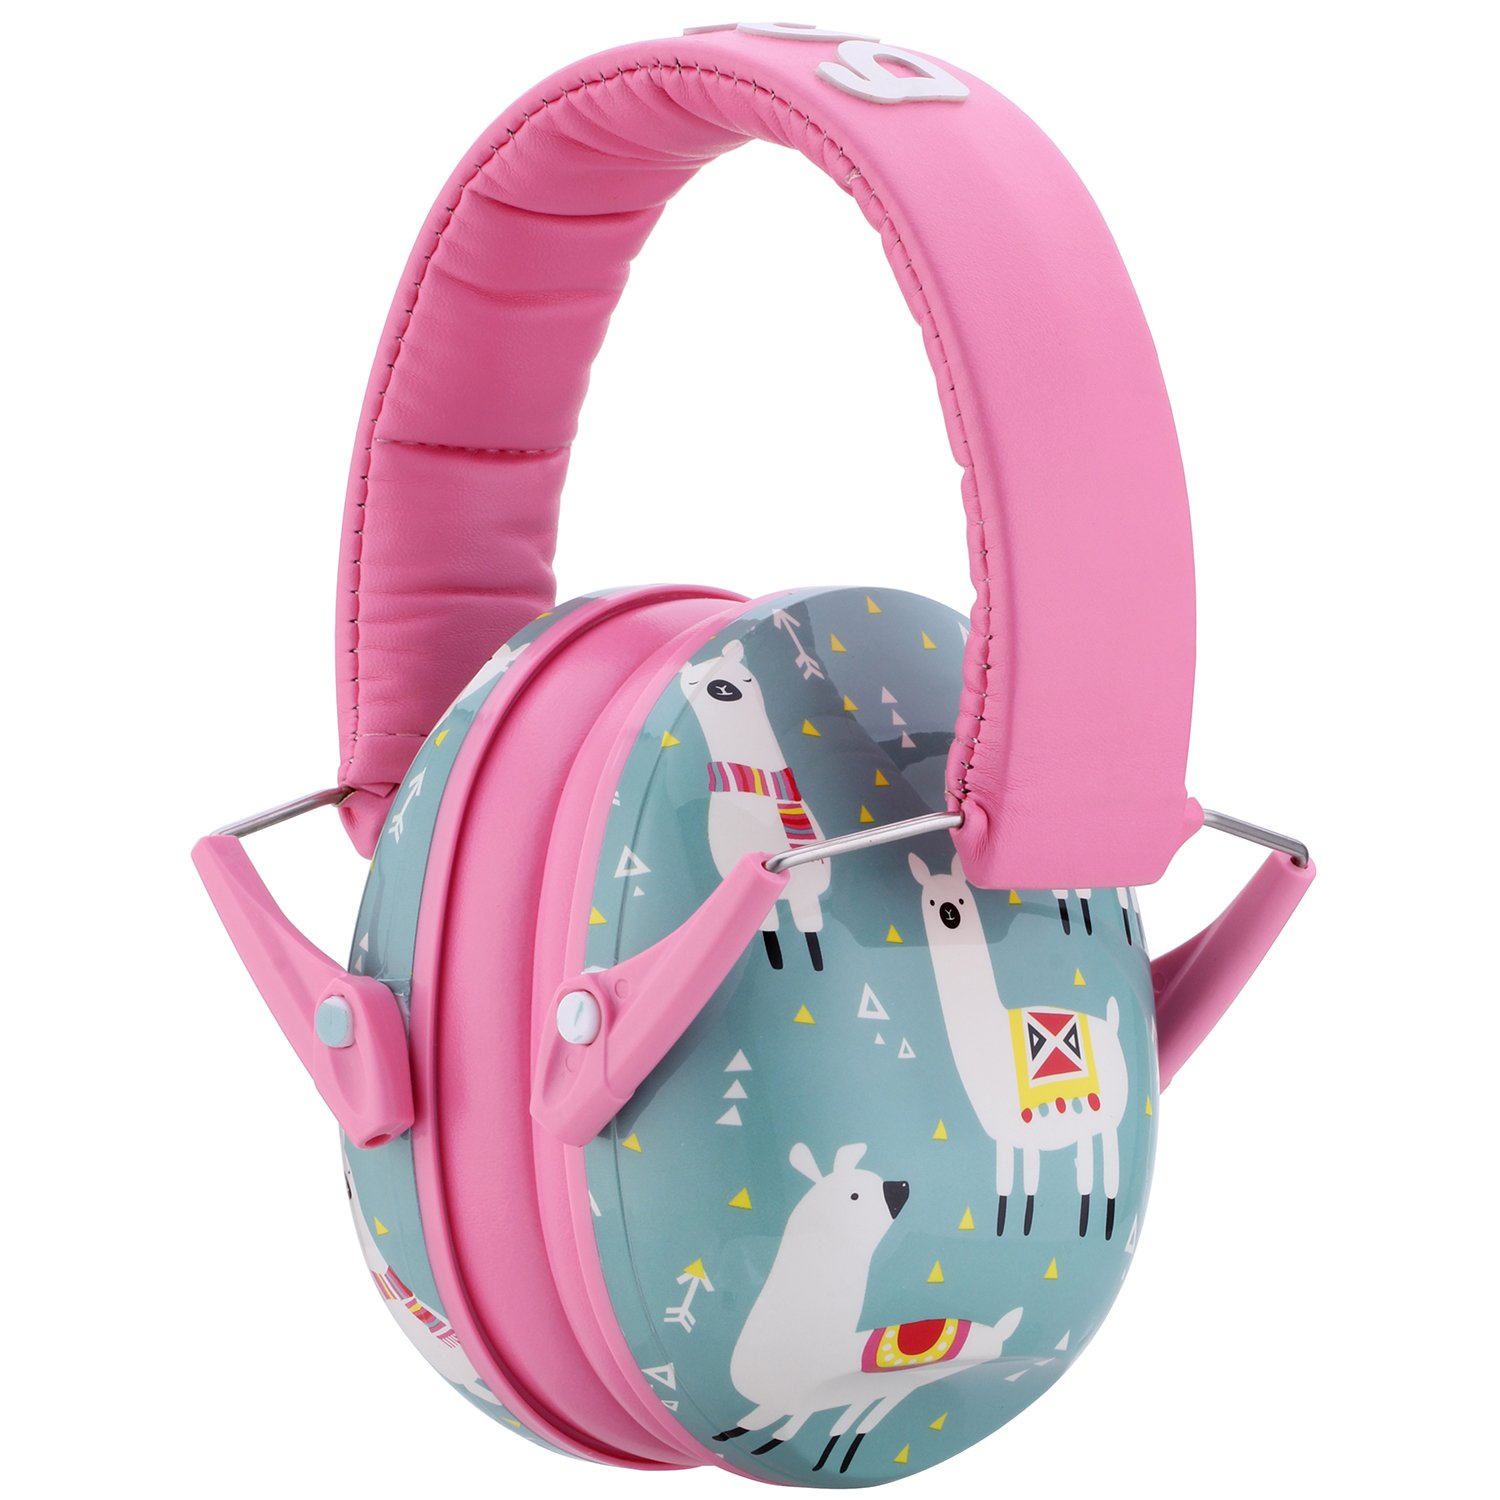 Snug Kids Earmuffs/Hearing Protectors – Adjustable Headband Ear Defenders for Children and Adults (Llamas) by Snug (Image #1)